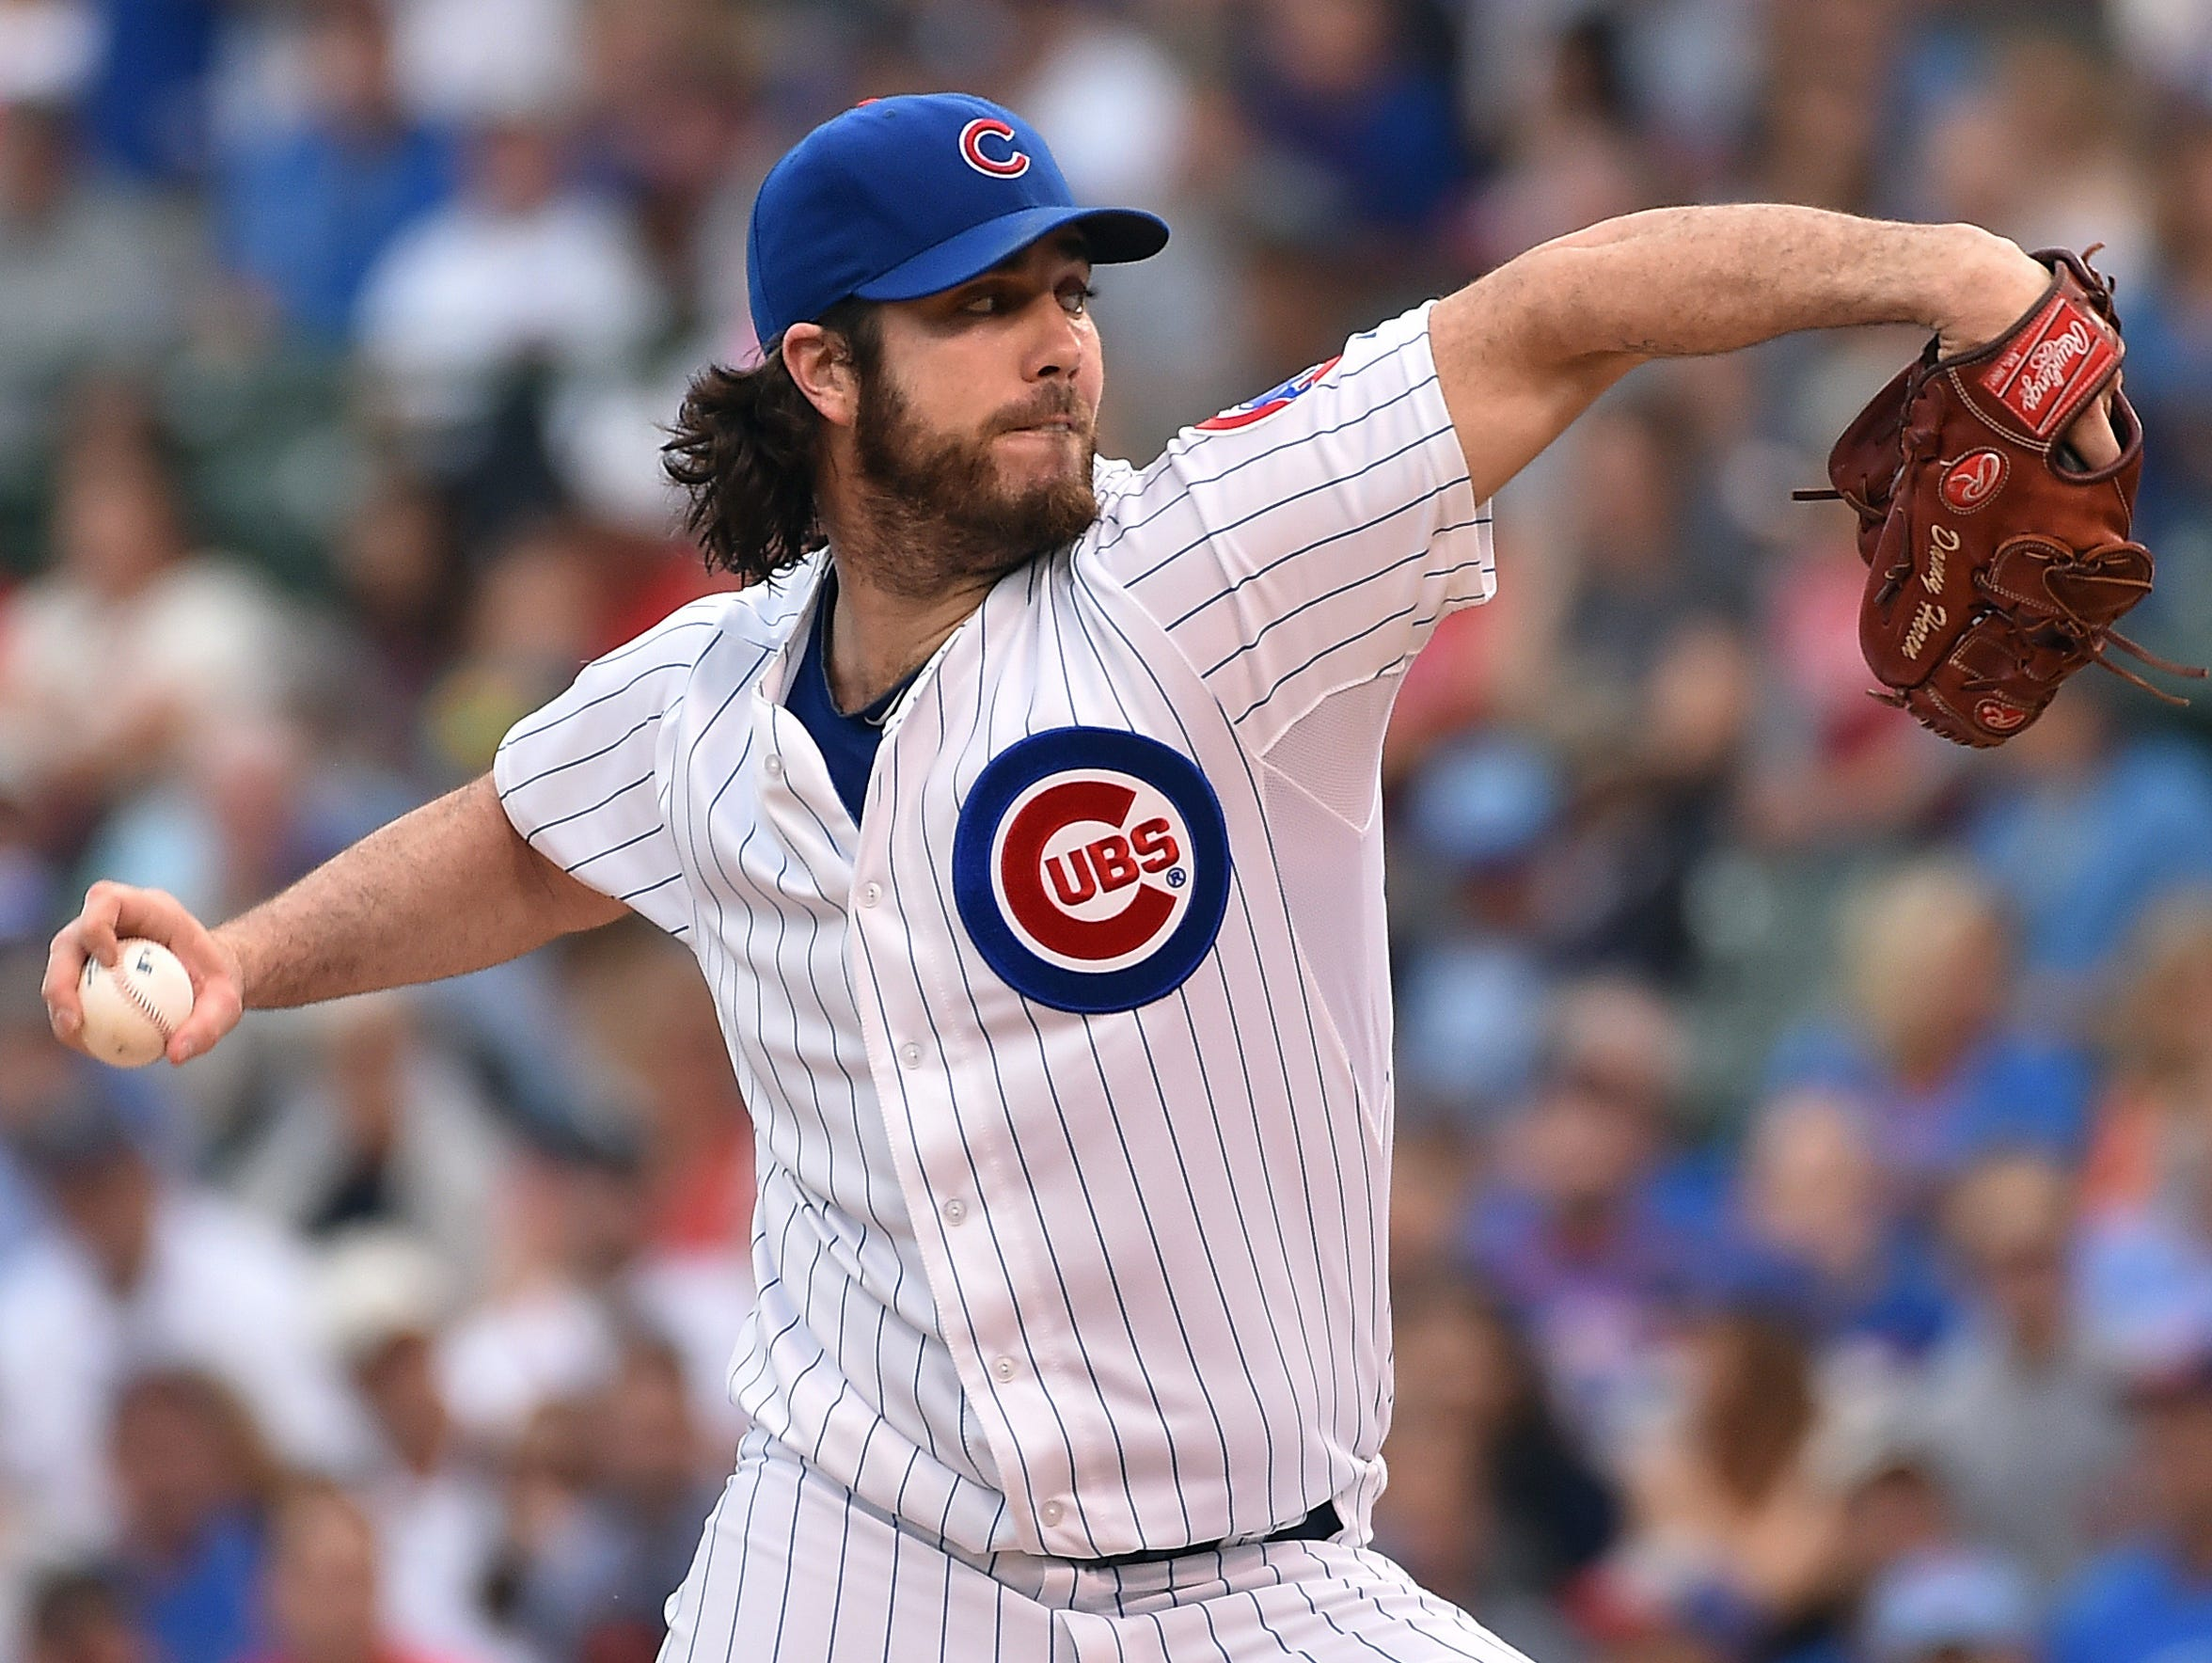 Dan Haren pitches for the Cubs in his final season